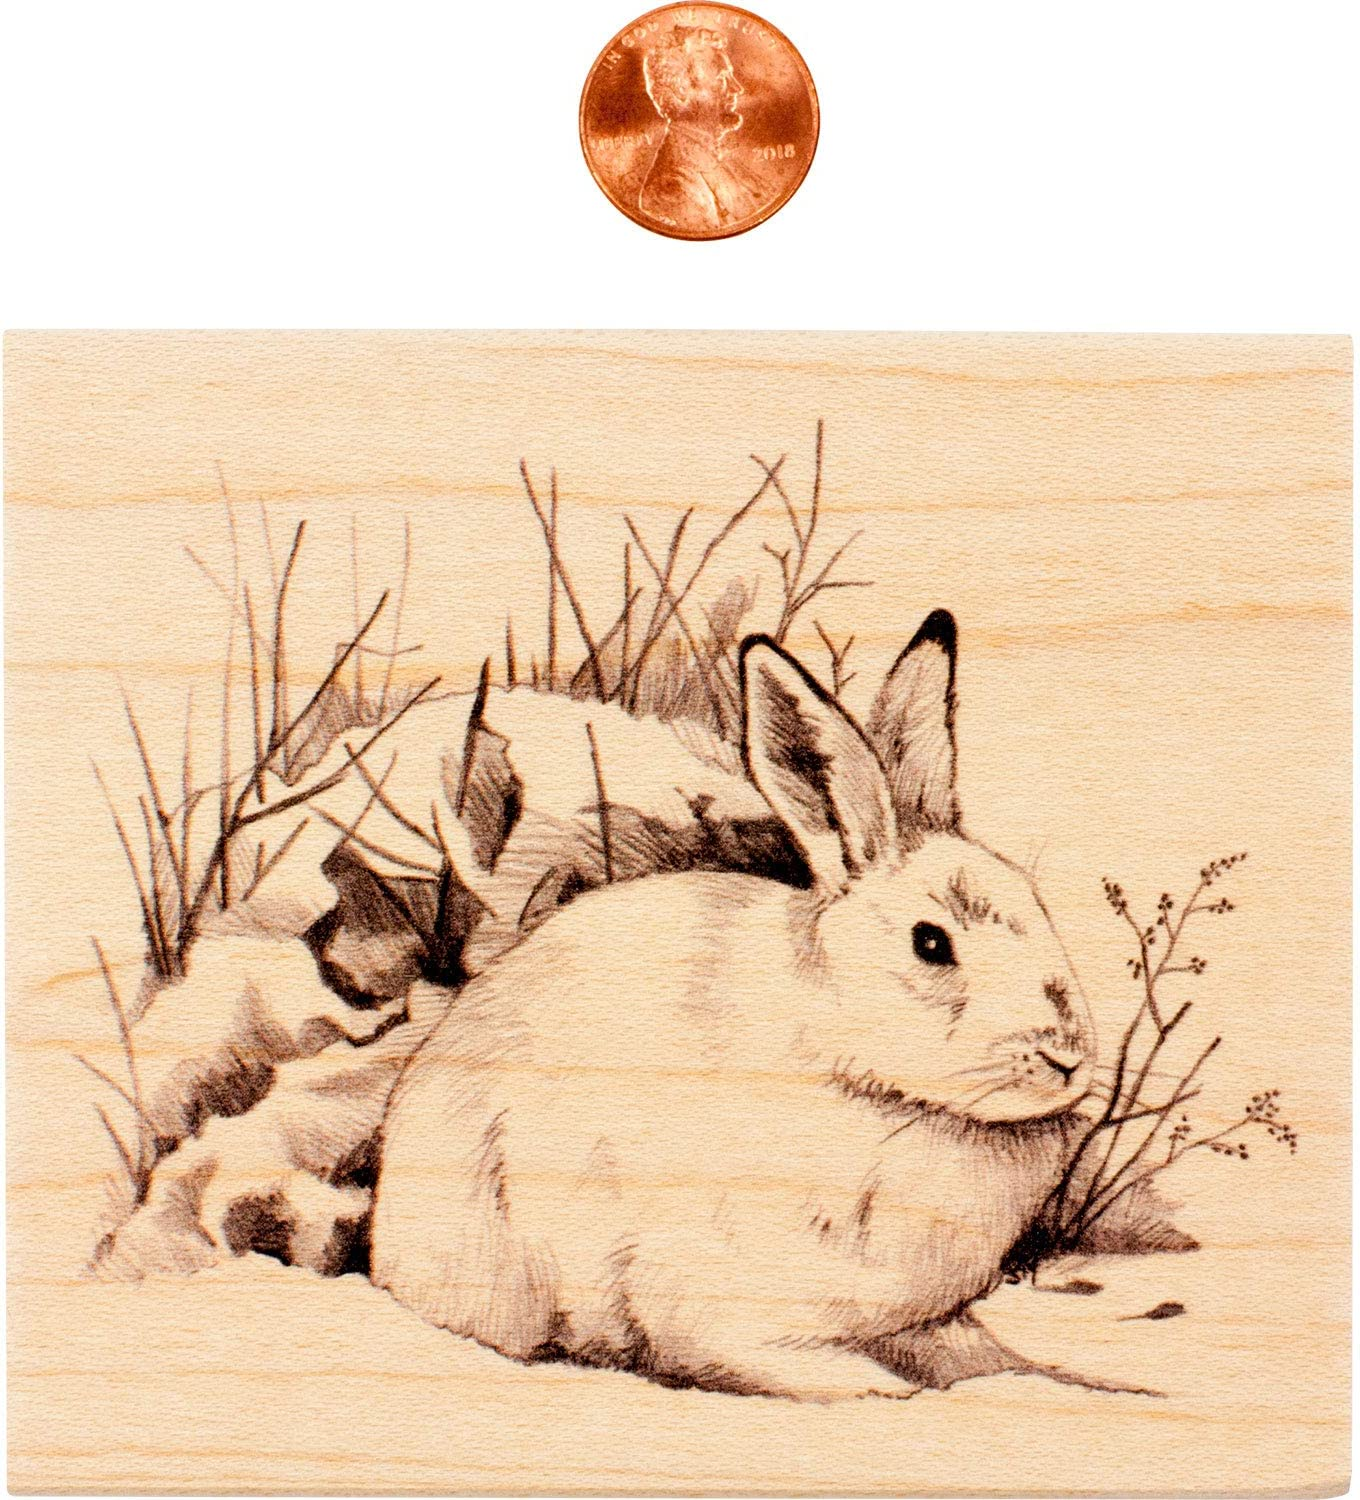 4 x 3.5 x 1 Inkadinkado Snow Rabbit Mounted Rubber Stamp for Card Making and Scrapbooking